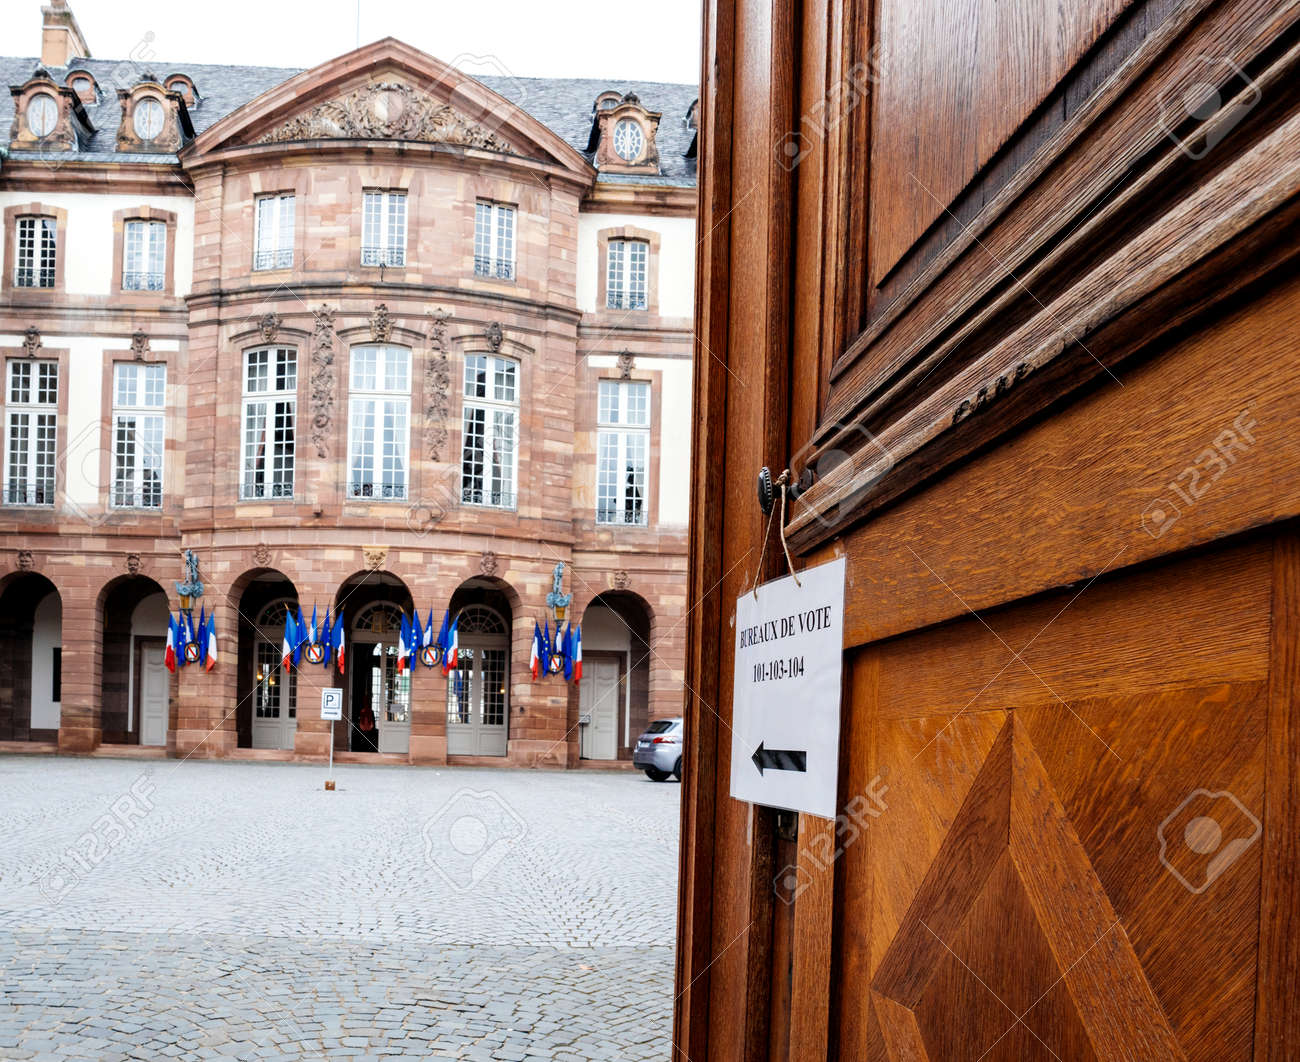 Strasbourg france may 7 2017: french polling station bureau